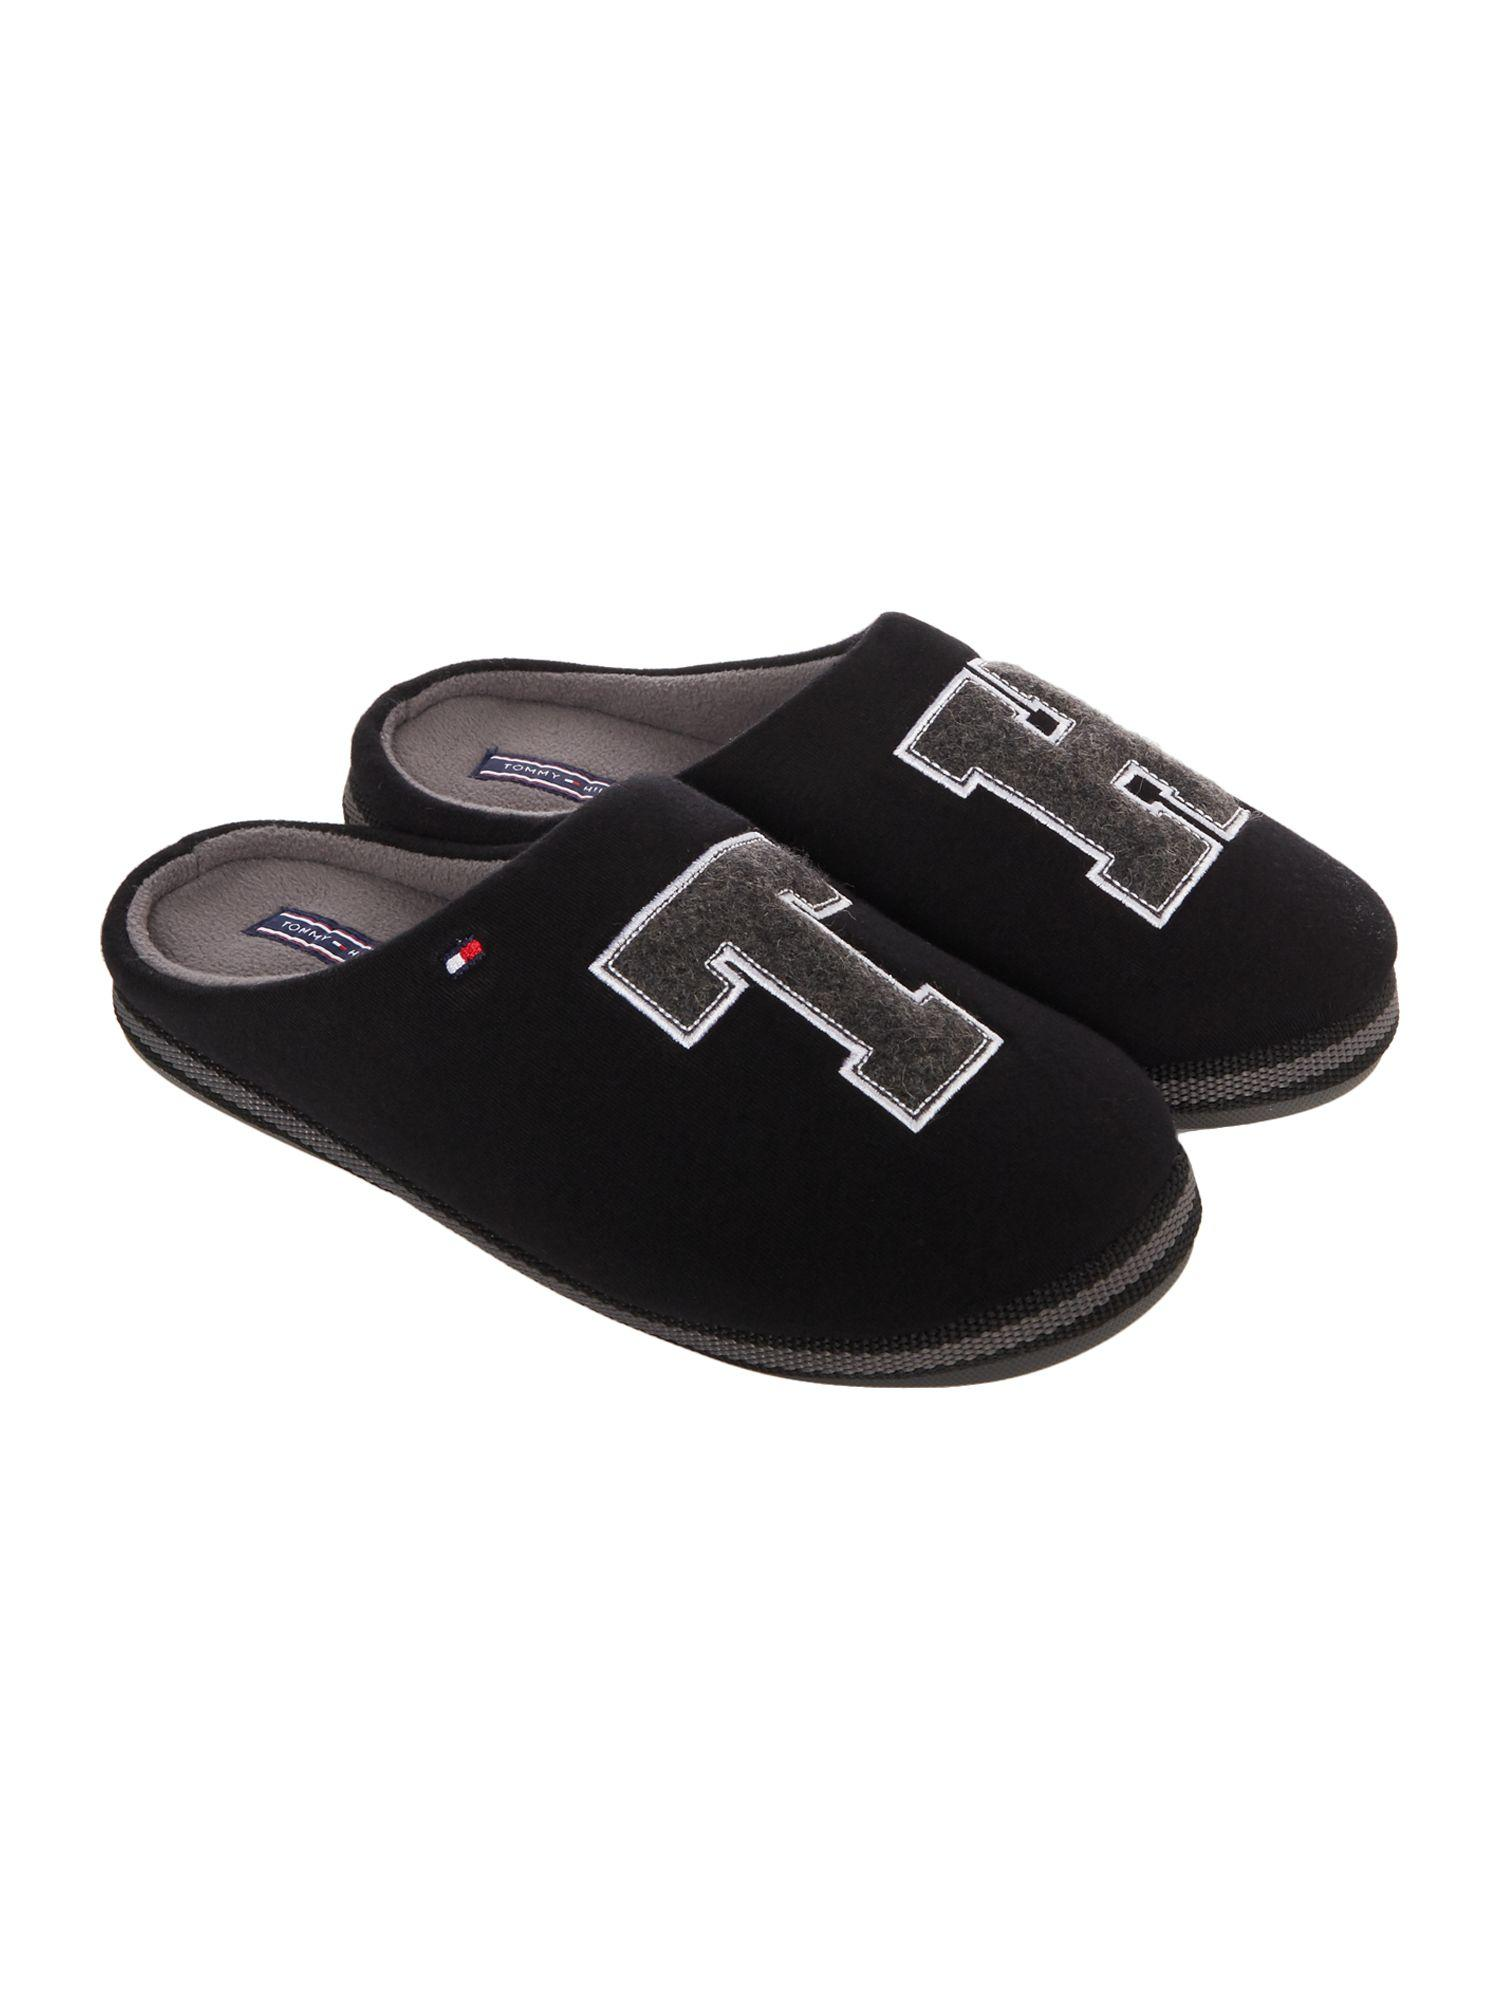 tommy hilfiger large logo slipper in black for men lyst. Black Bedroom Furniture Sets. Home Design Ideas